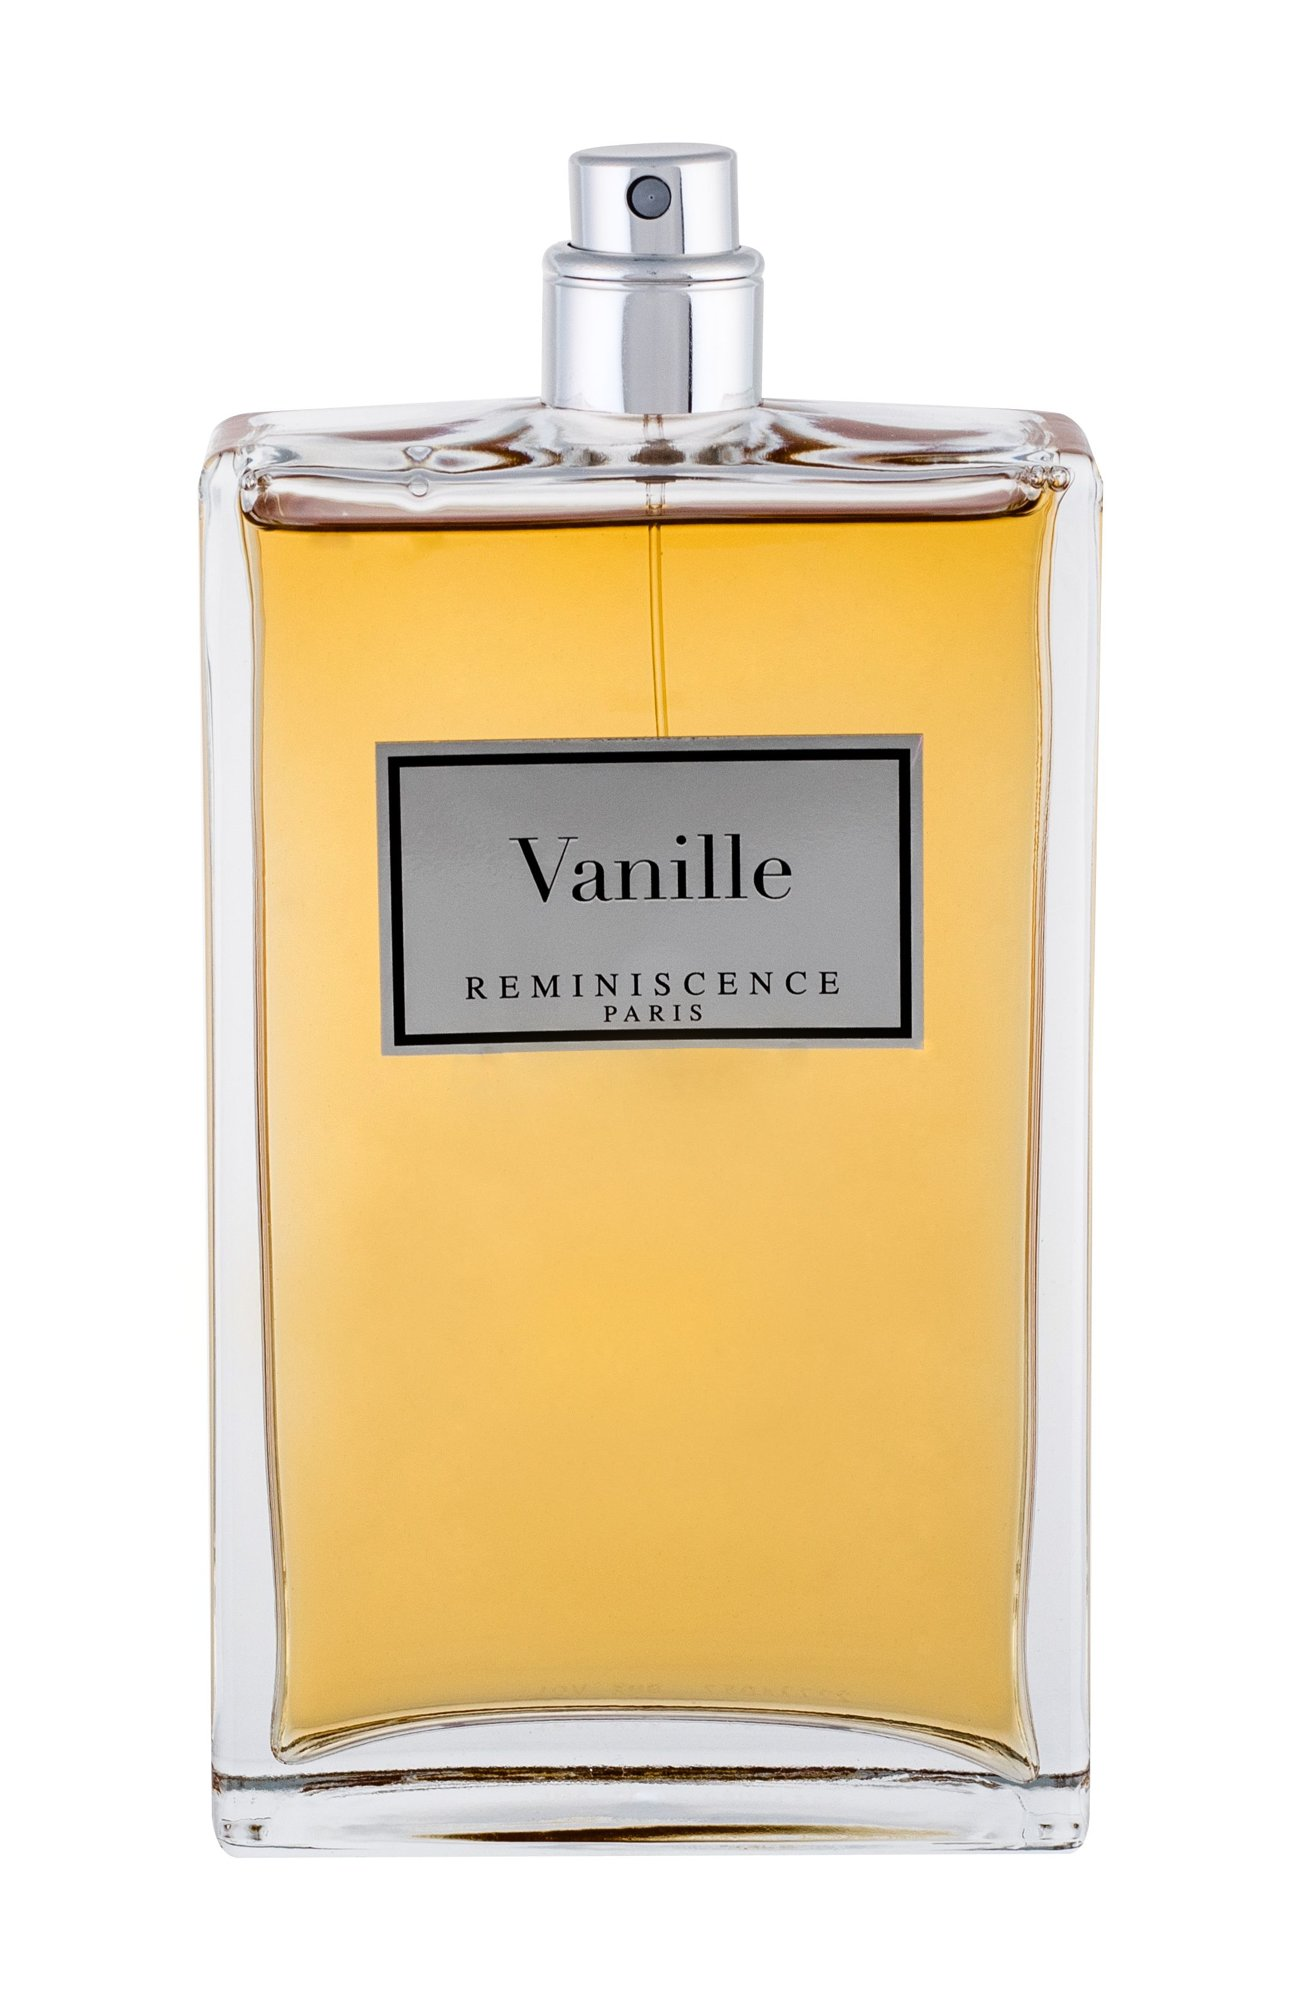 Reminiscence Vanille Eau de Toilette 100ml